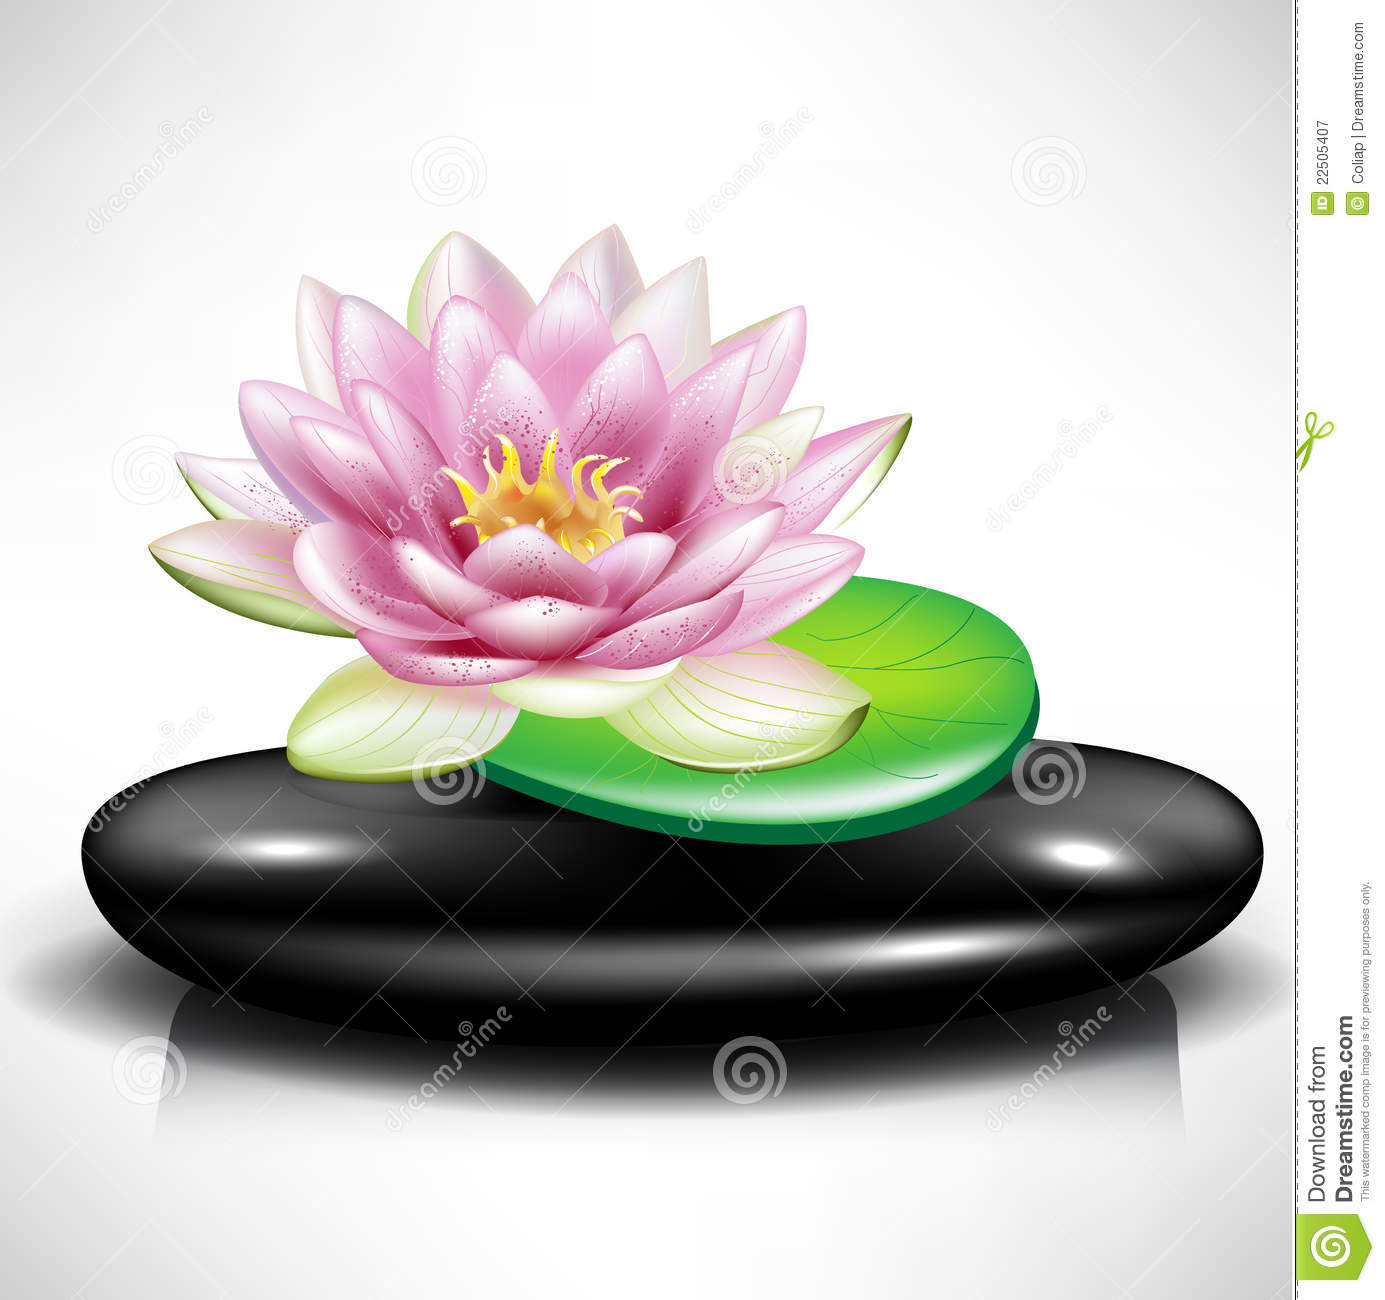 Single spa stonepebble with lotus flower stock vector single spa stonepebble with lotus flower izmirmasajfo